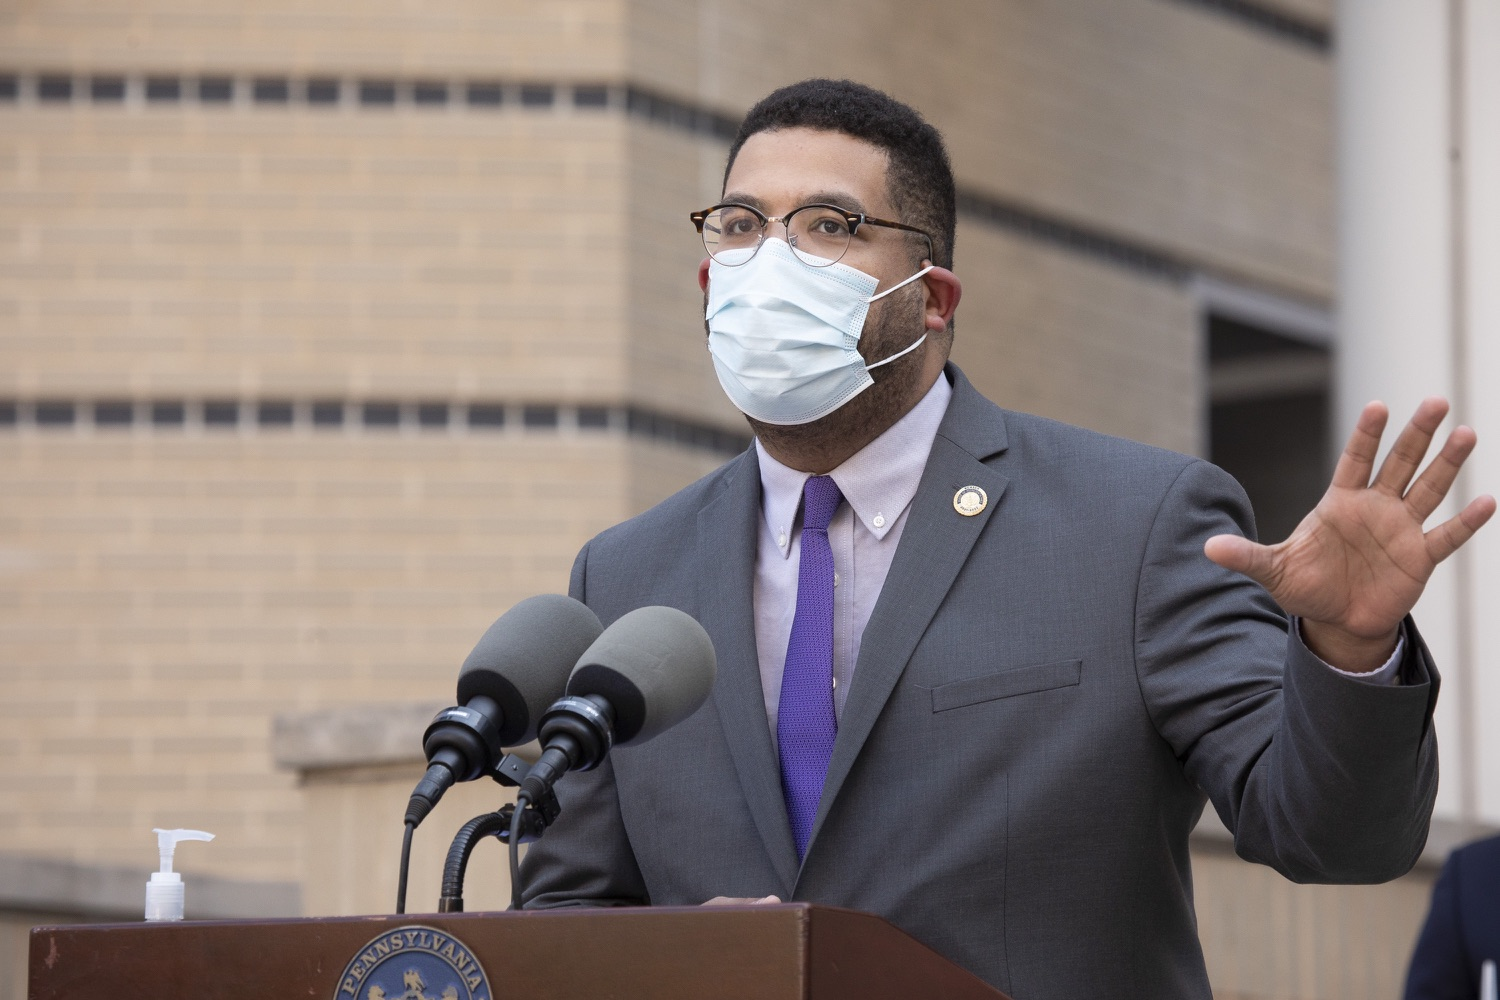 """<a href=""""https://filesource.wostreaming.net/commonwealthofpa/photo/18688_gov_vaccines_dz_003.jpg"""" target=""""_blank"""">⇣Download Photo<br></a>Representative Manuel Guzman speaking with the press.  As Pennsylvania continues its accelerated COVID-19 vaccination plan, Pennsylvanians who are not able to leave their homes must be reached, and various state agencies and community groups are helping. Governor Tom Wolf visited Reading to talk about how the state and its partners are using various means to reach people not able to leave home to be vaccinated against COVID-19.  APRIL 26, 2021 - READING, PA"""